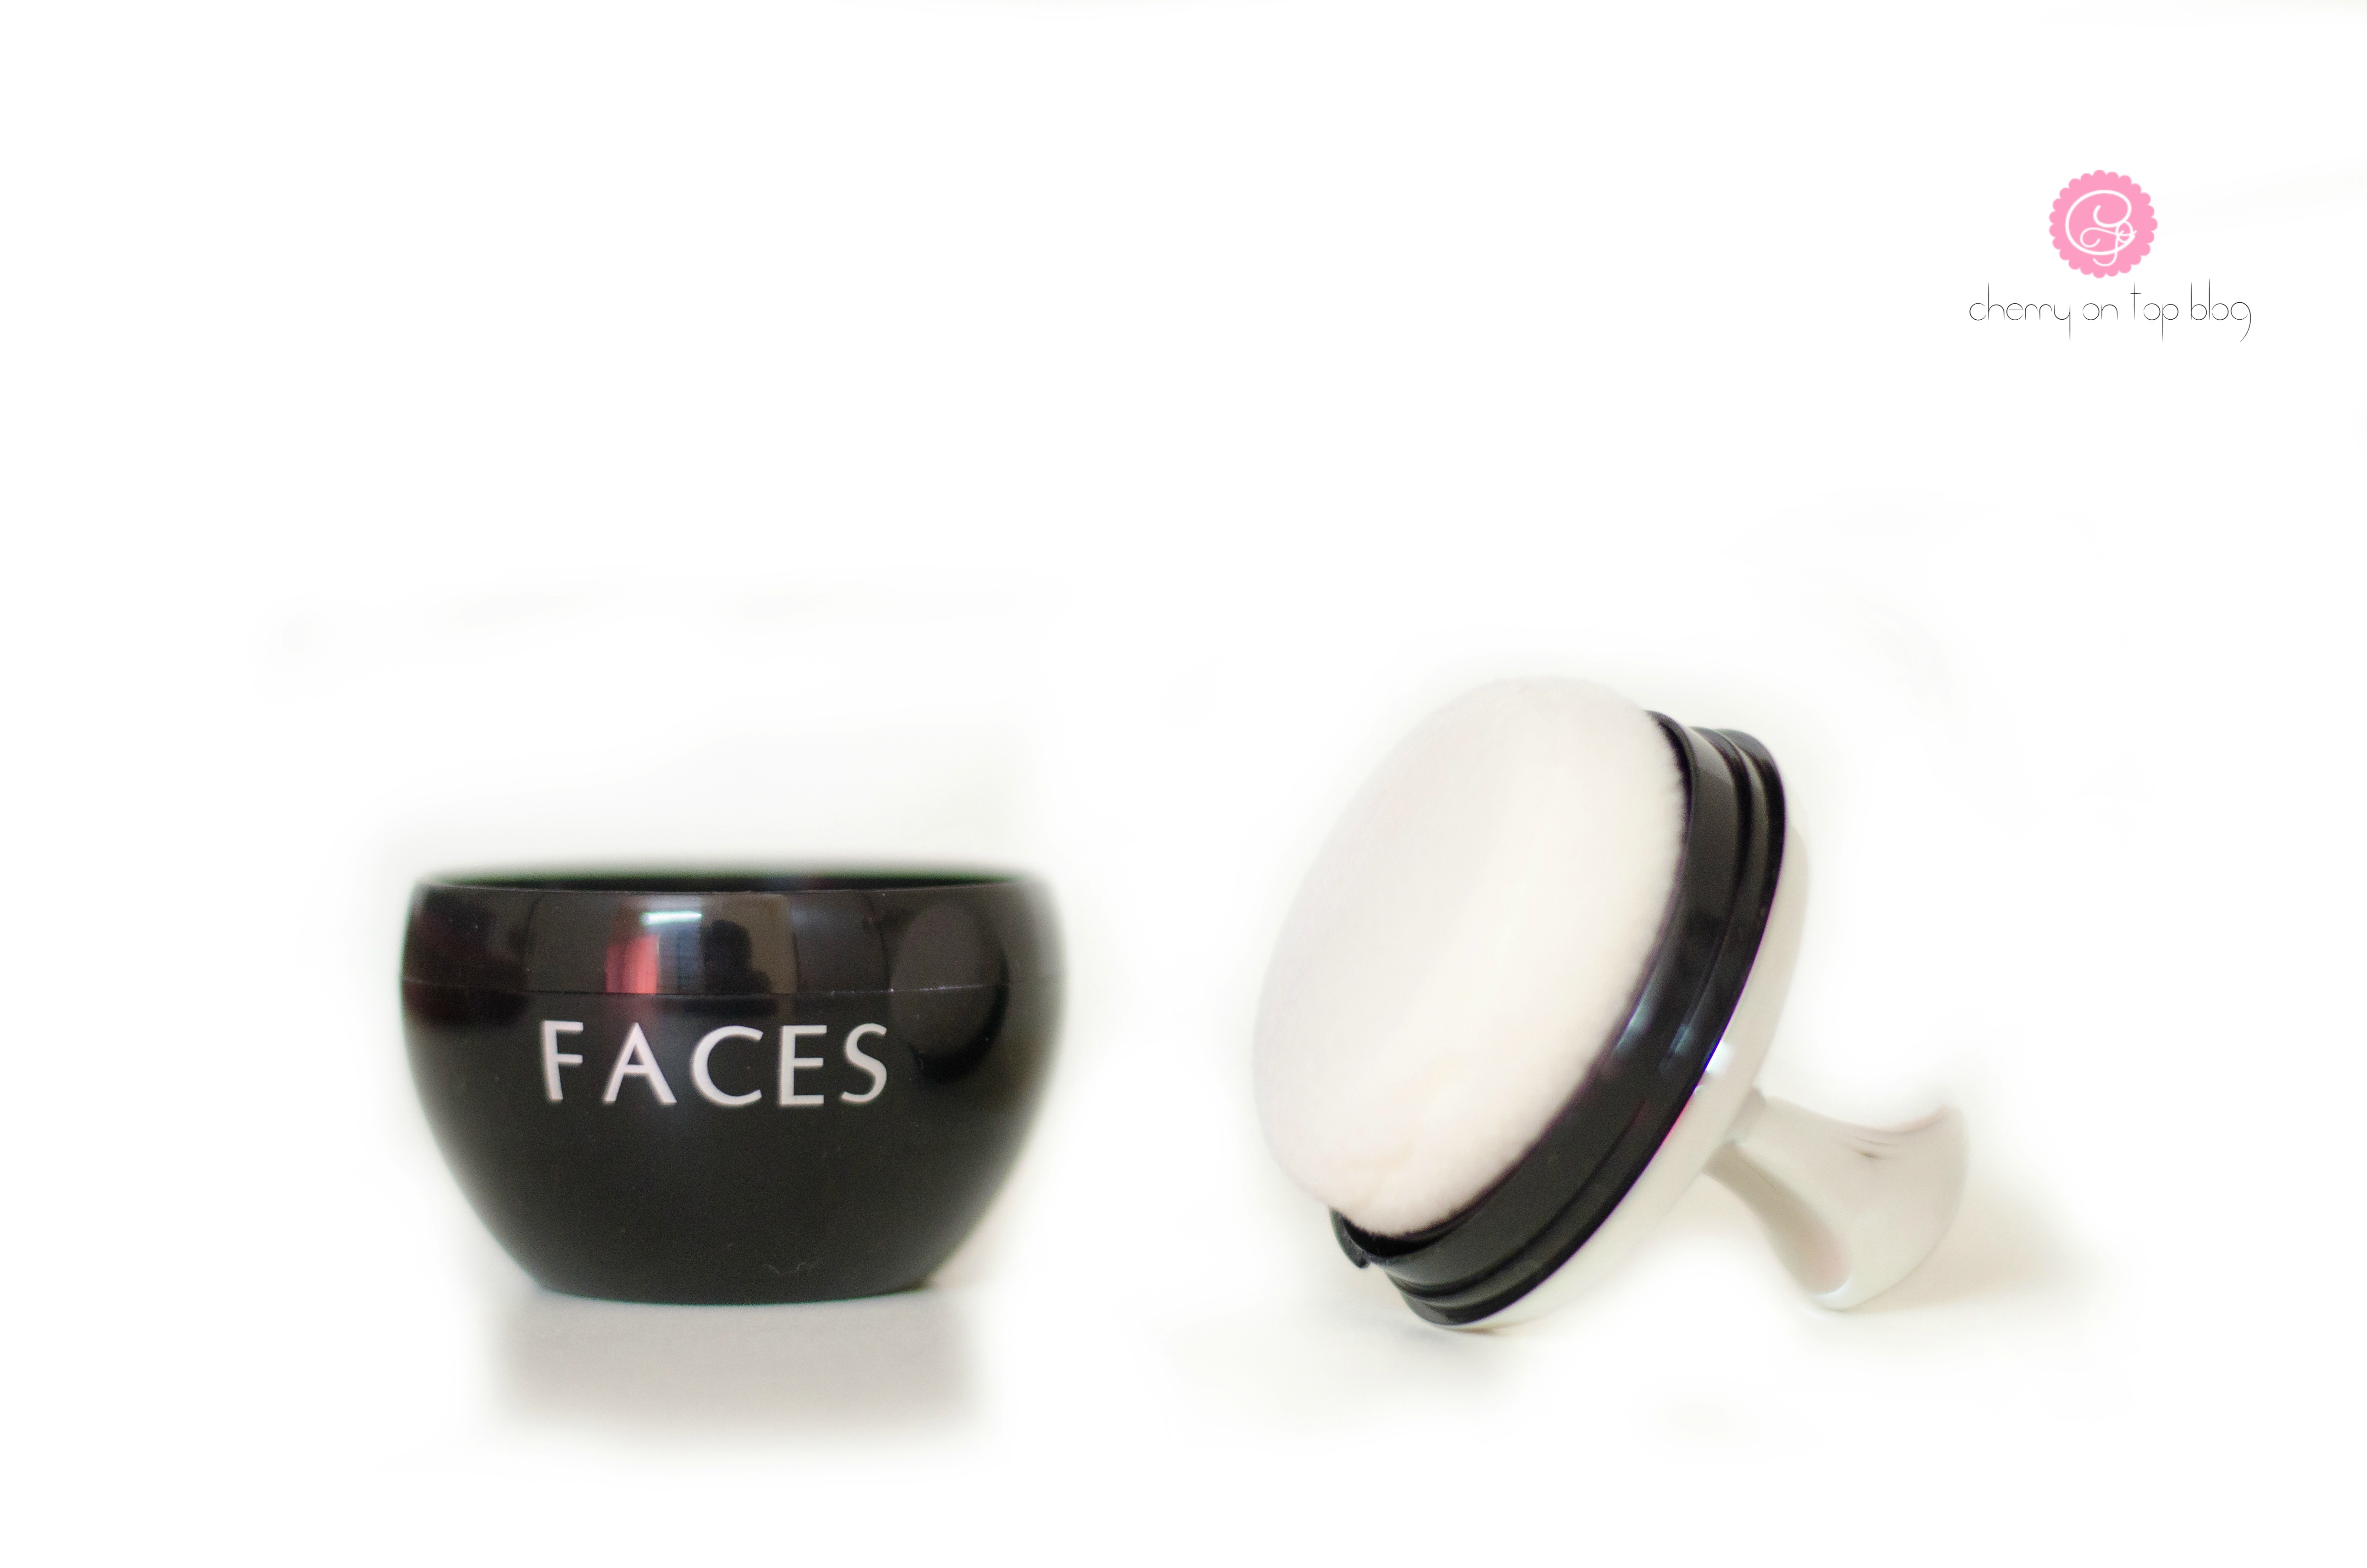 Faces Ultime Pro Mineral Loose Powder Review and Swatches   cherryontopblog.com